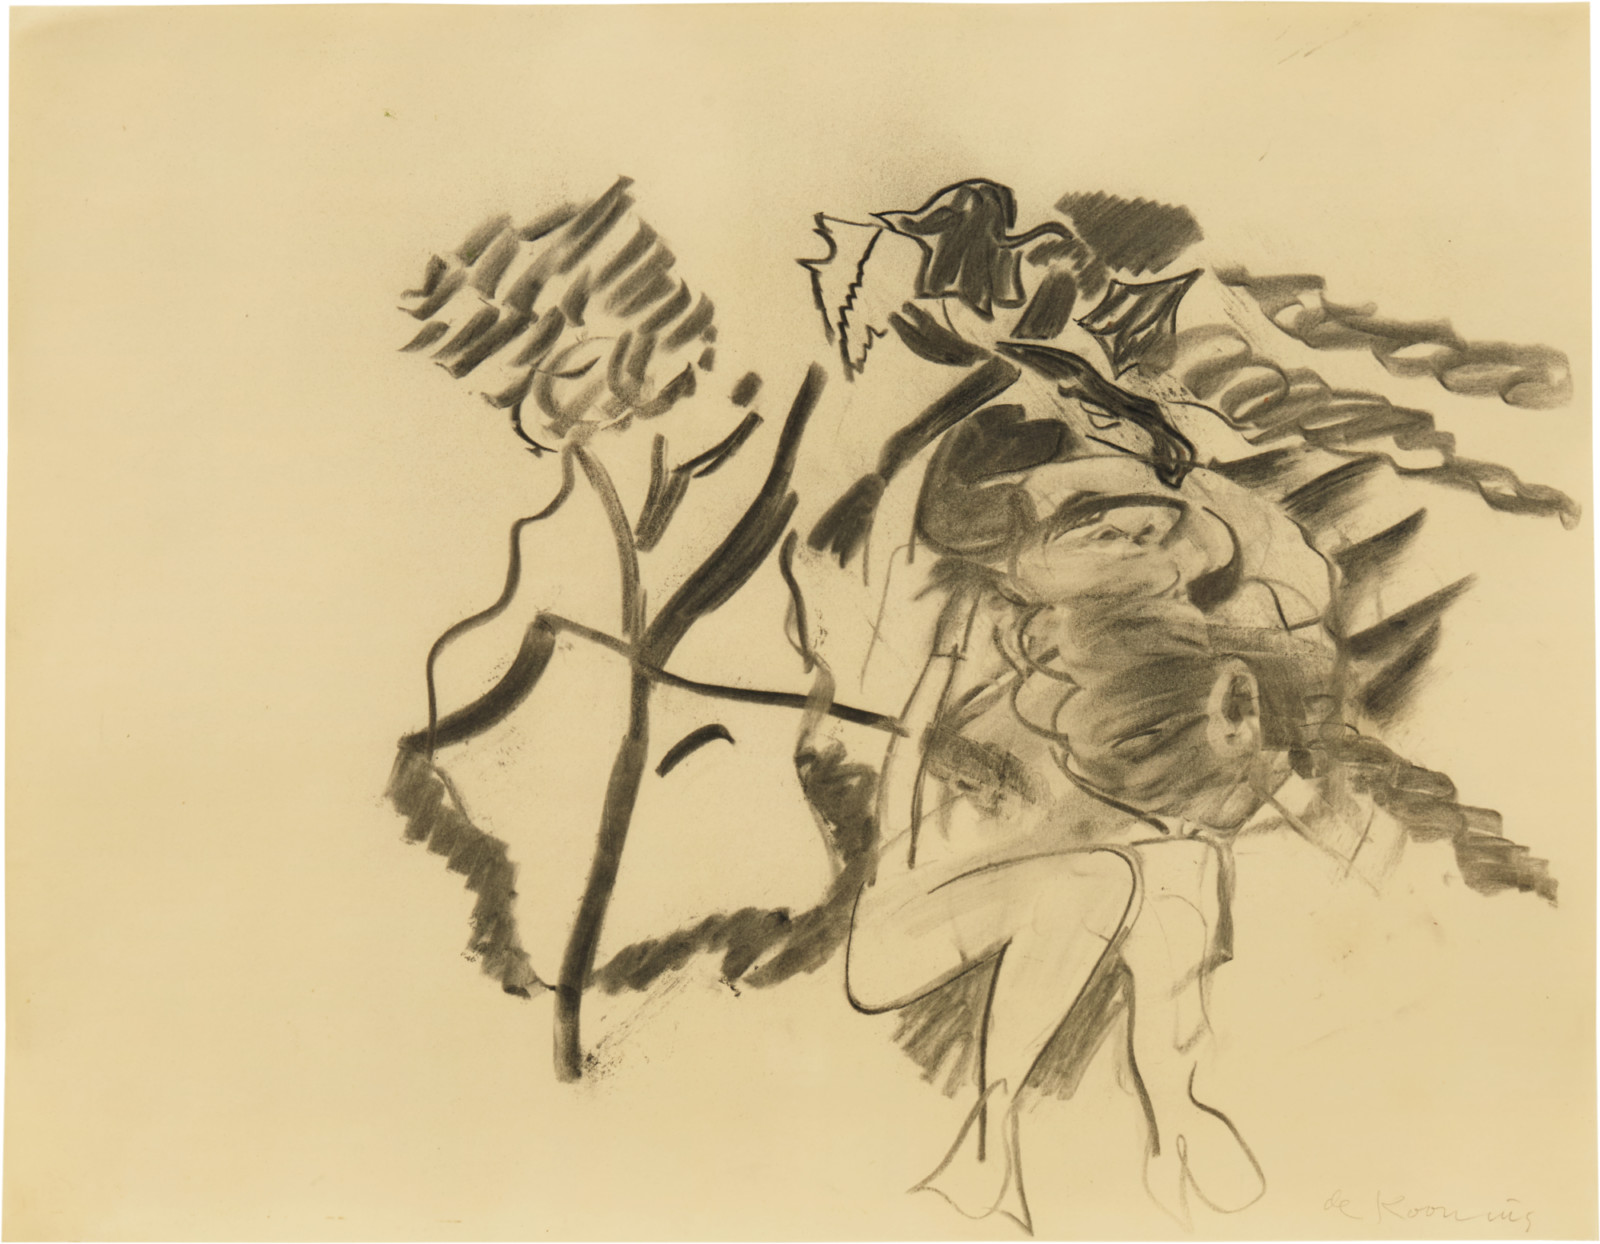 Drawing, dated 1968